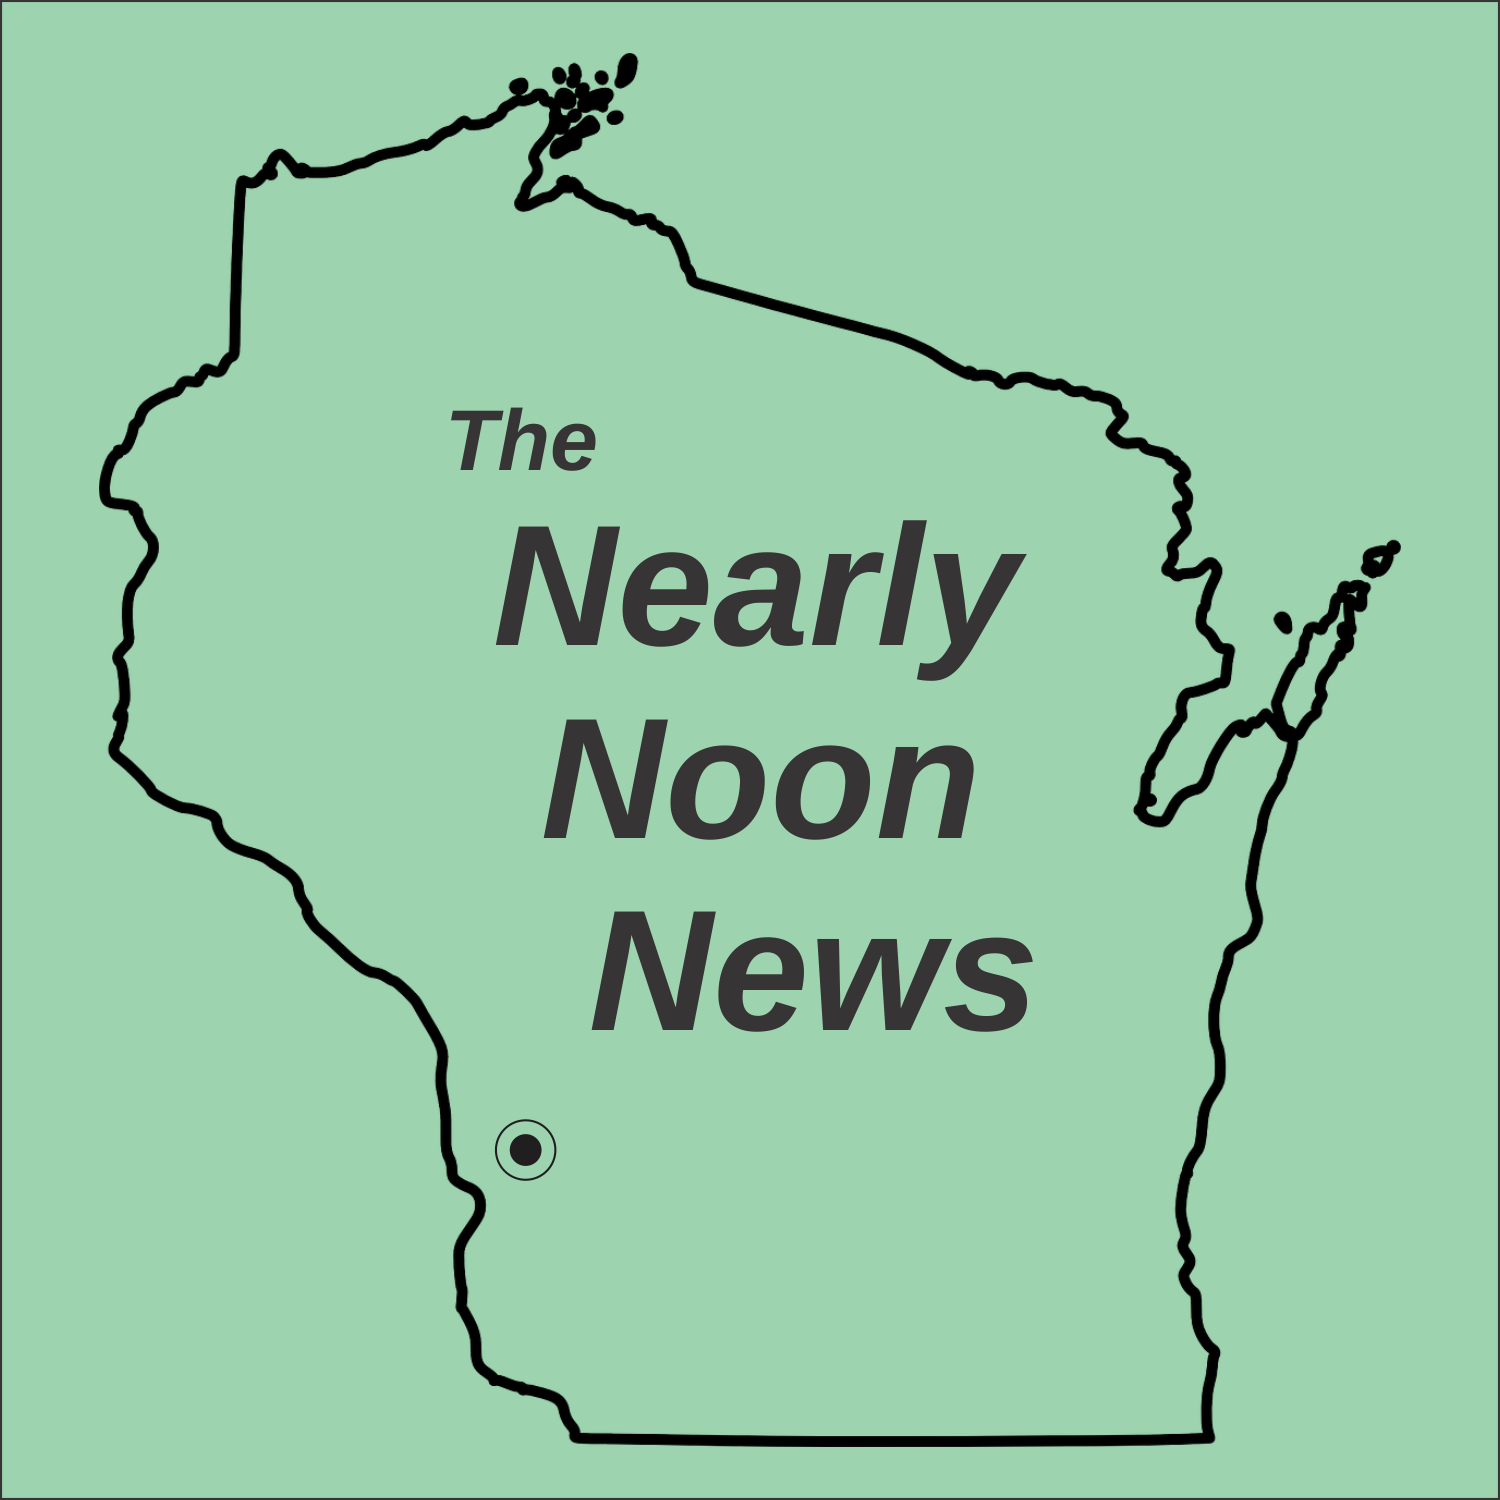 The Nearly Noon News